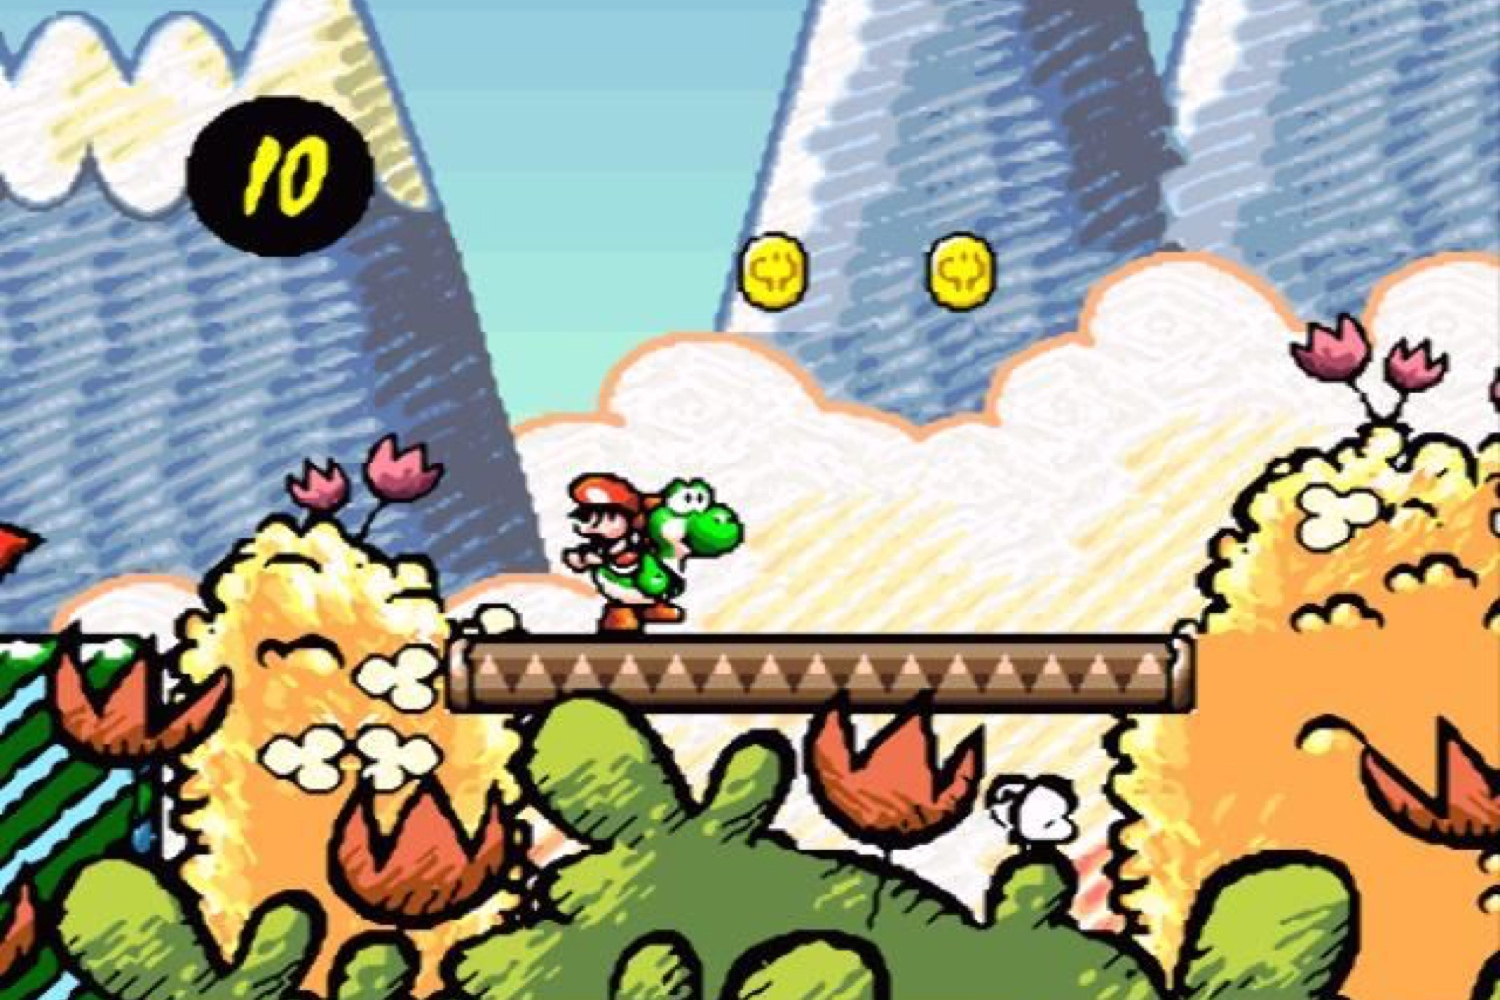 1995: Super Mario World 2: Yoshi's Island                                                              This prequel to Super Mario World challenged players to take the reins as Yoshi, schlepping a toddling Mario through dozens of beautifully hand-drawn levels, in order to rescue Mario's brother Luigi.